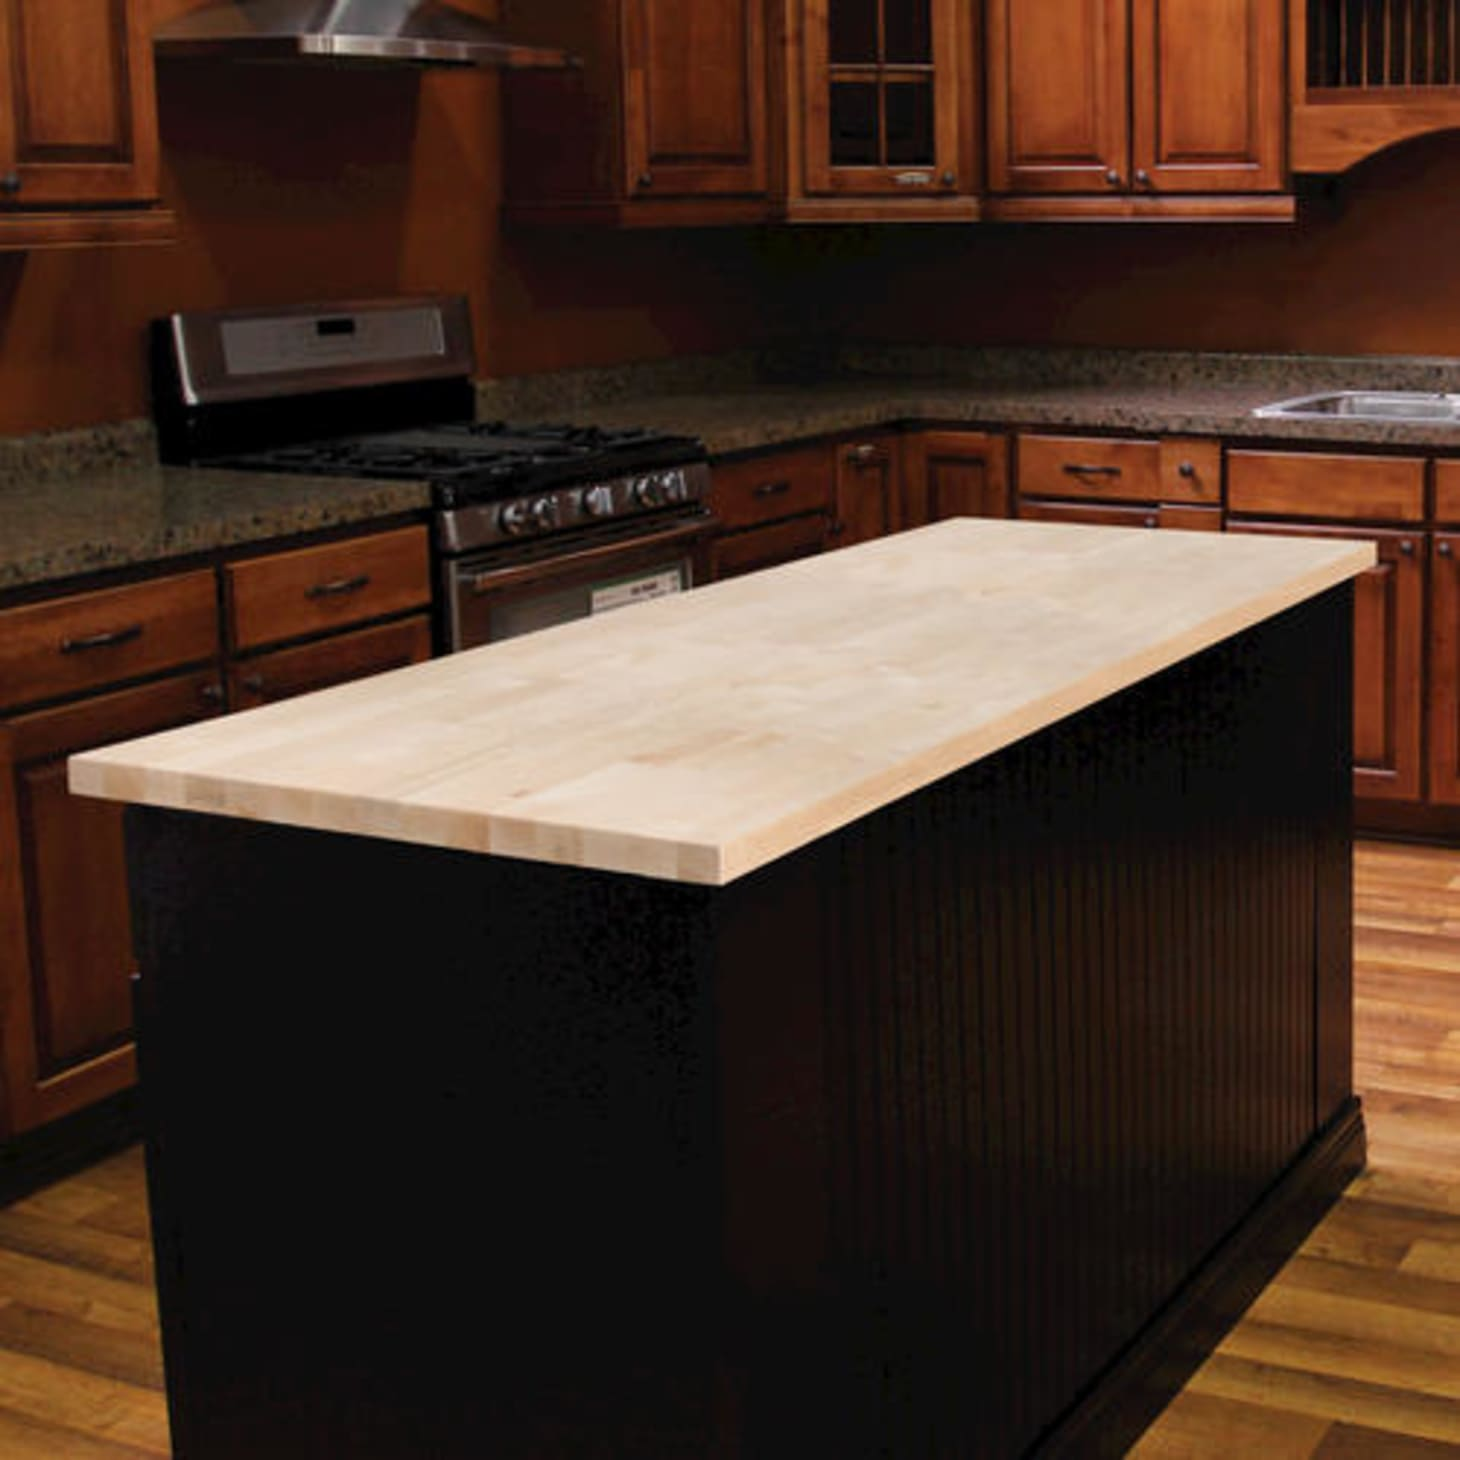 Butcher Block Countertops Are Beauty On A Budget